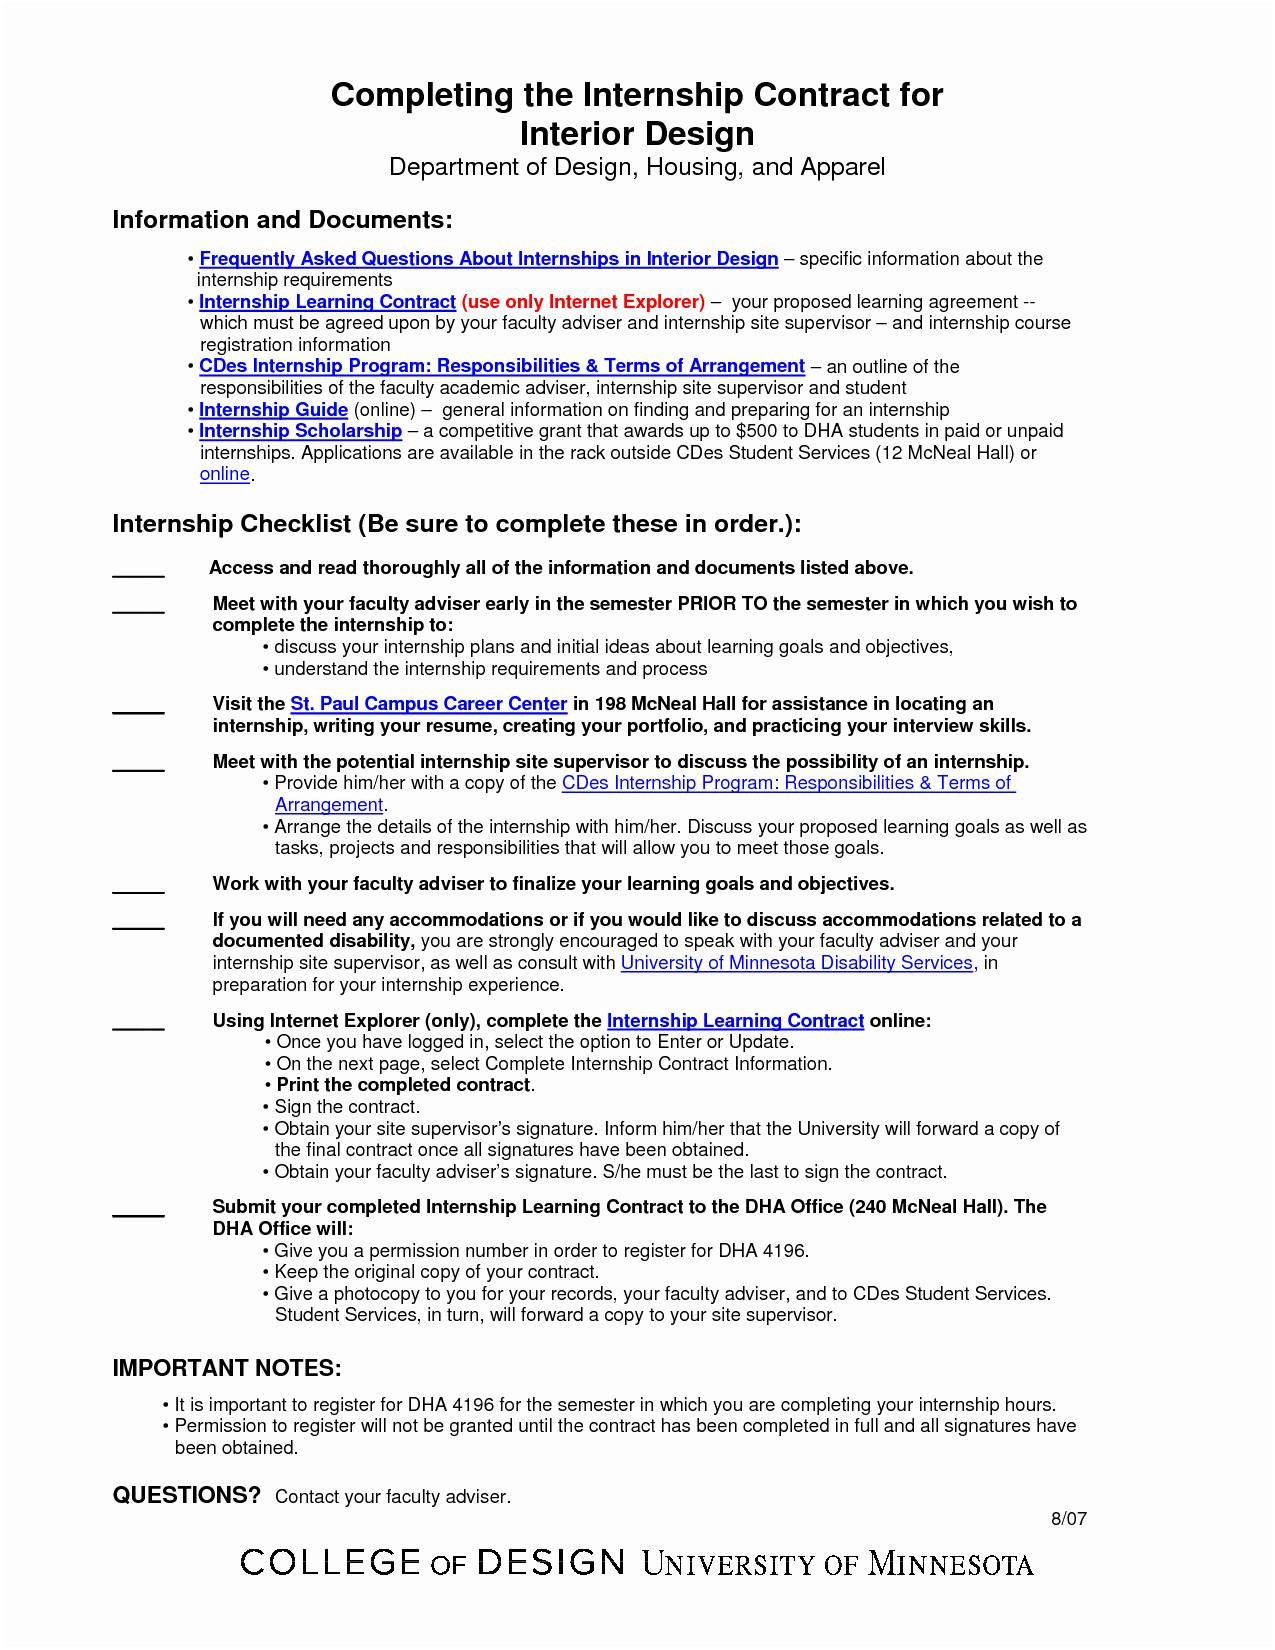 Interior Design Letter Of Agreement Template - Contract Agreement Template